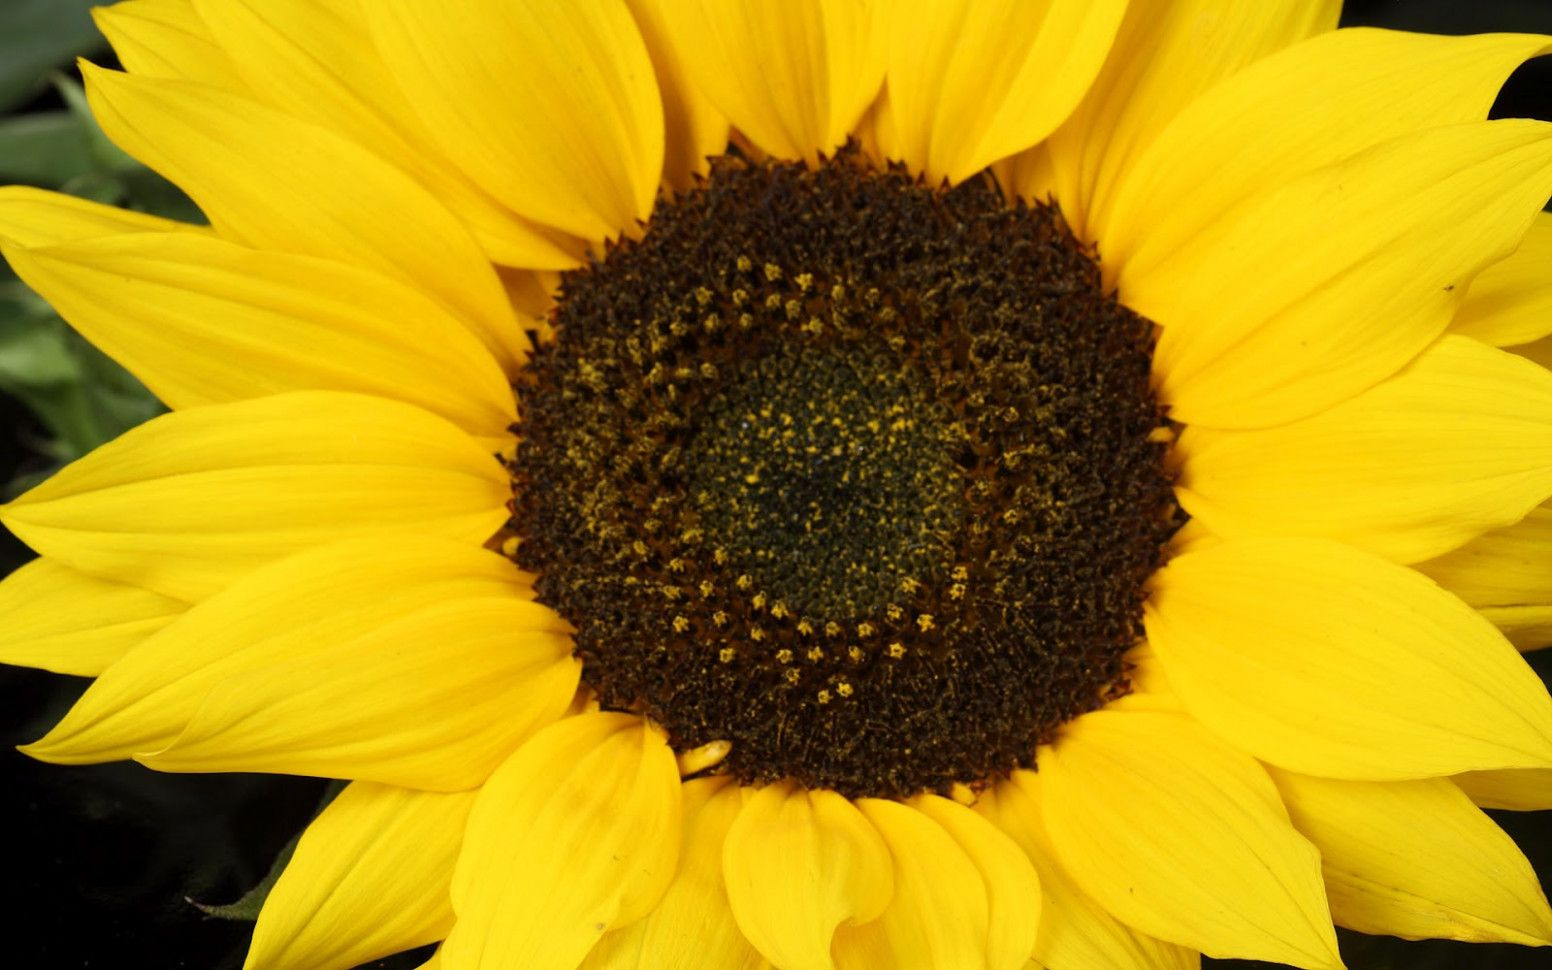 Seven Common Misconceptions About Sunflower Wallpaper | Sunflower Wallpaper #sunflowerwallpaper